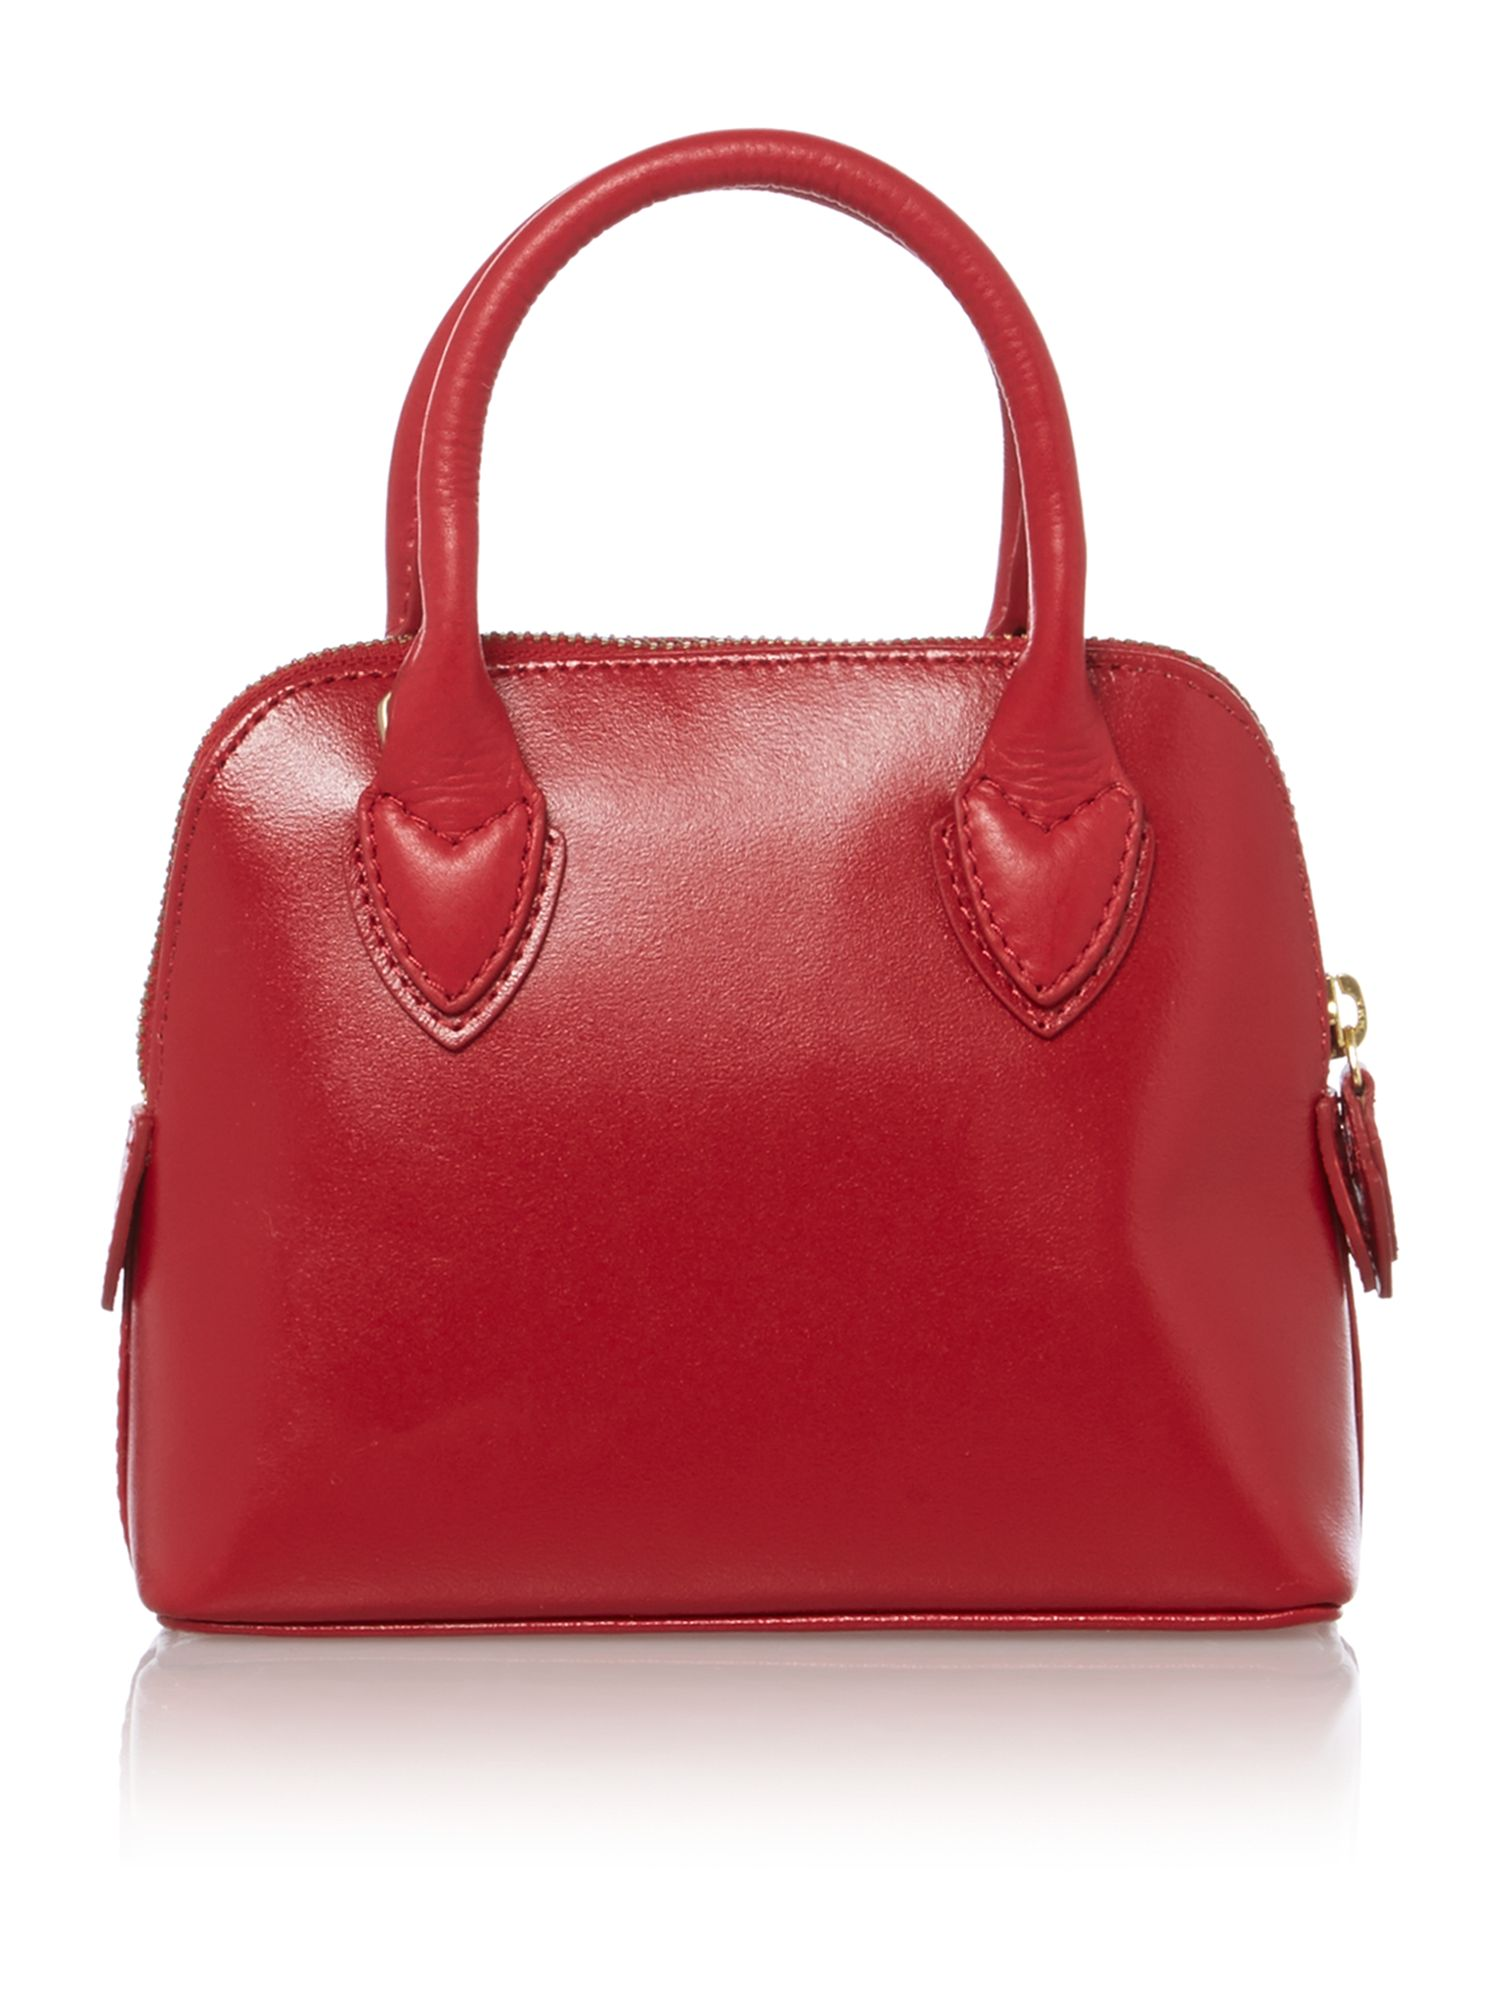 Aldgate red mini ziptop leather xbody bag